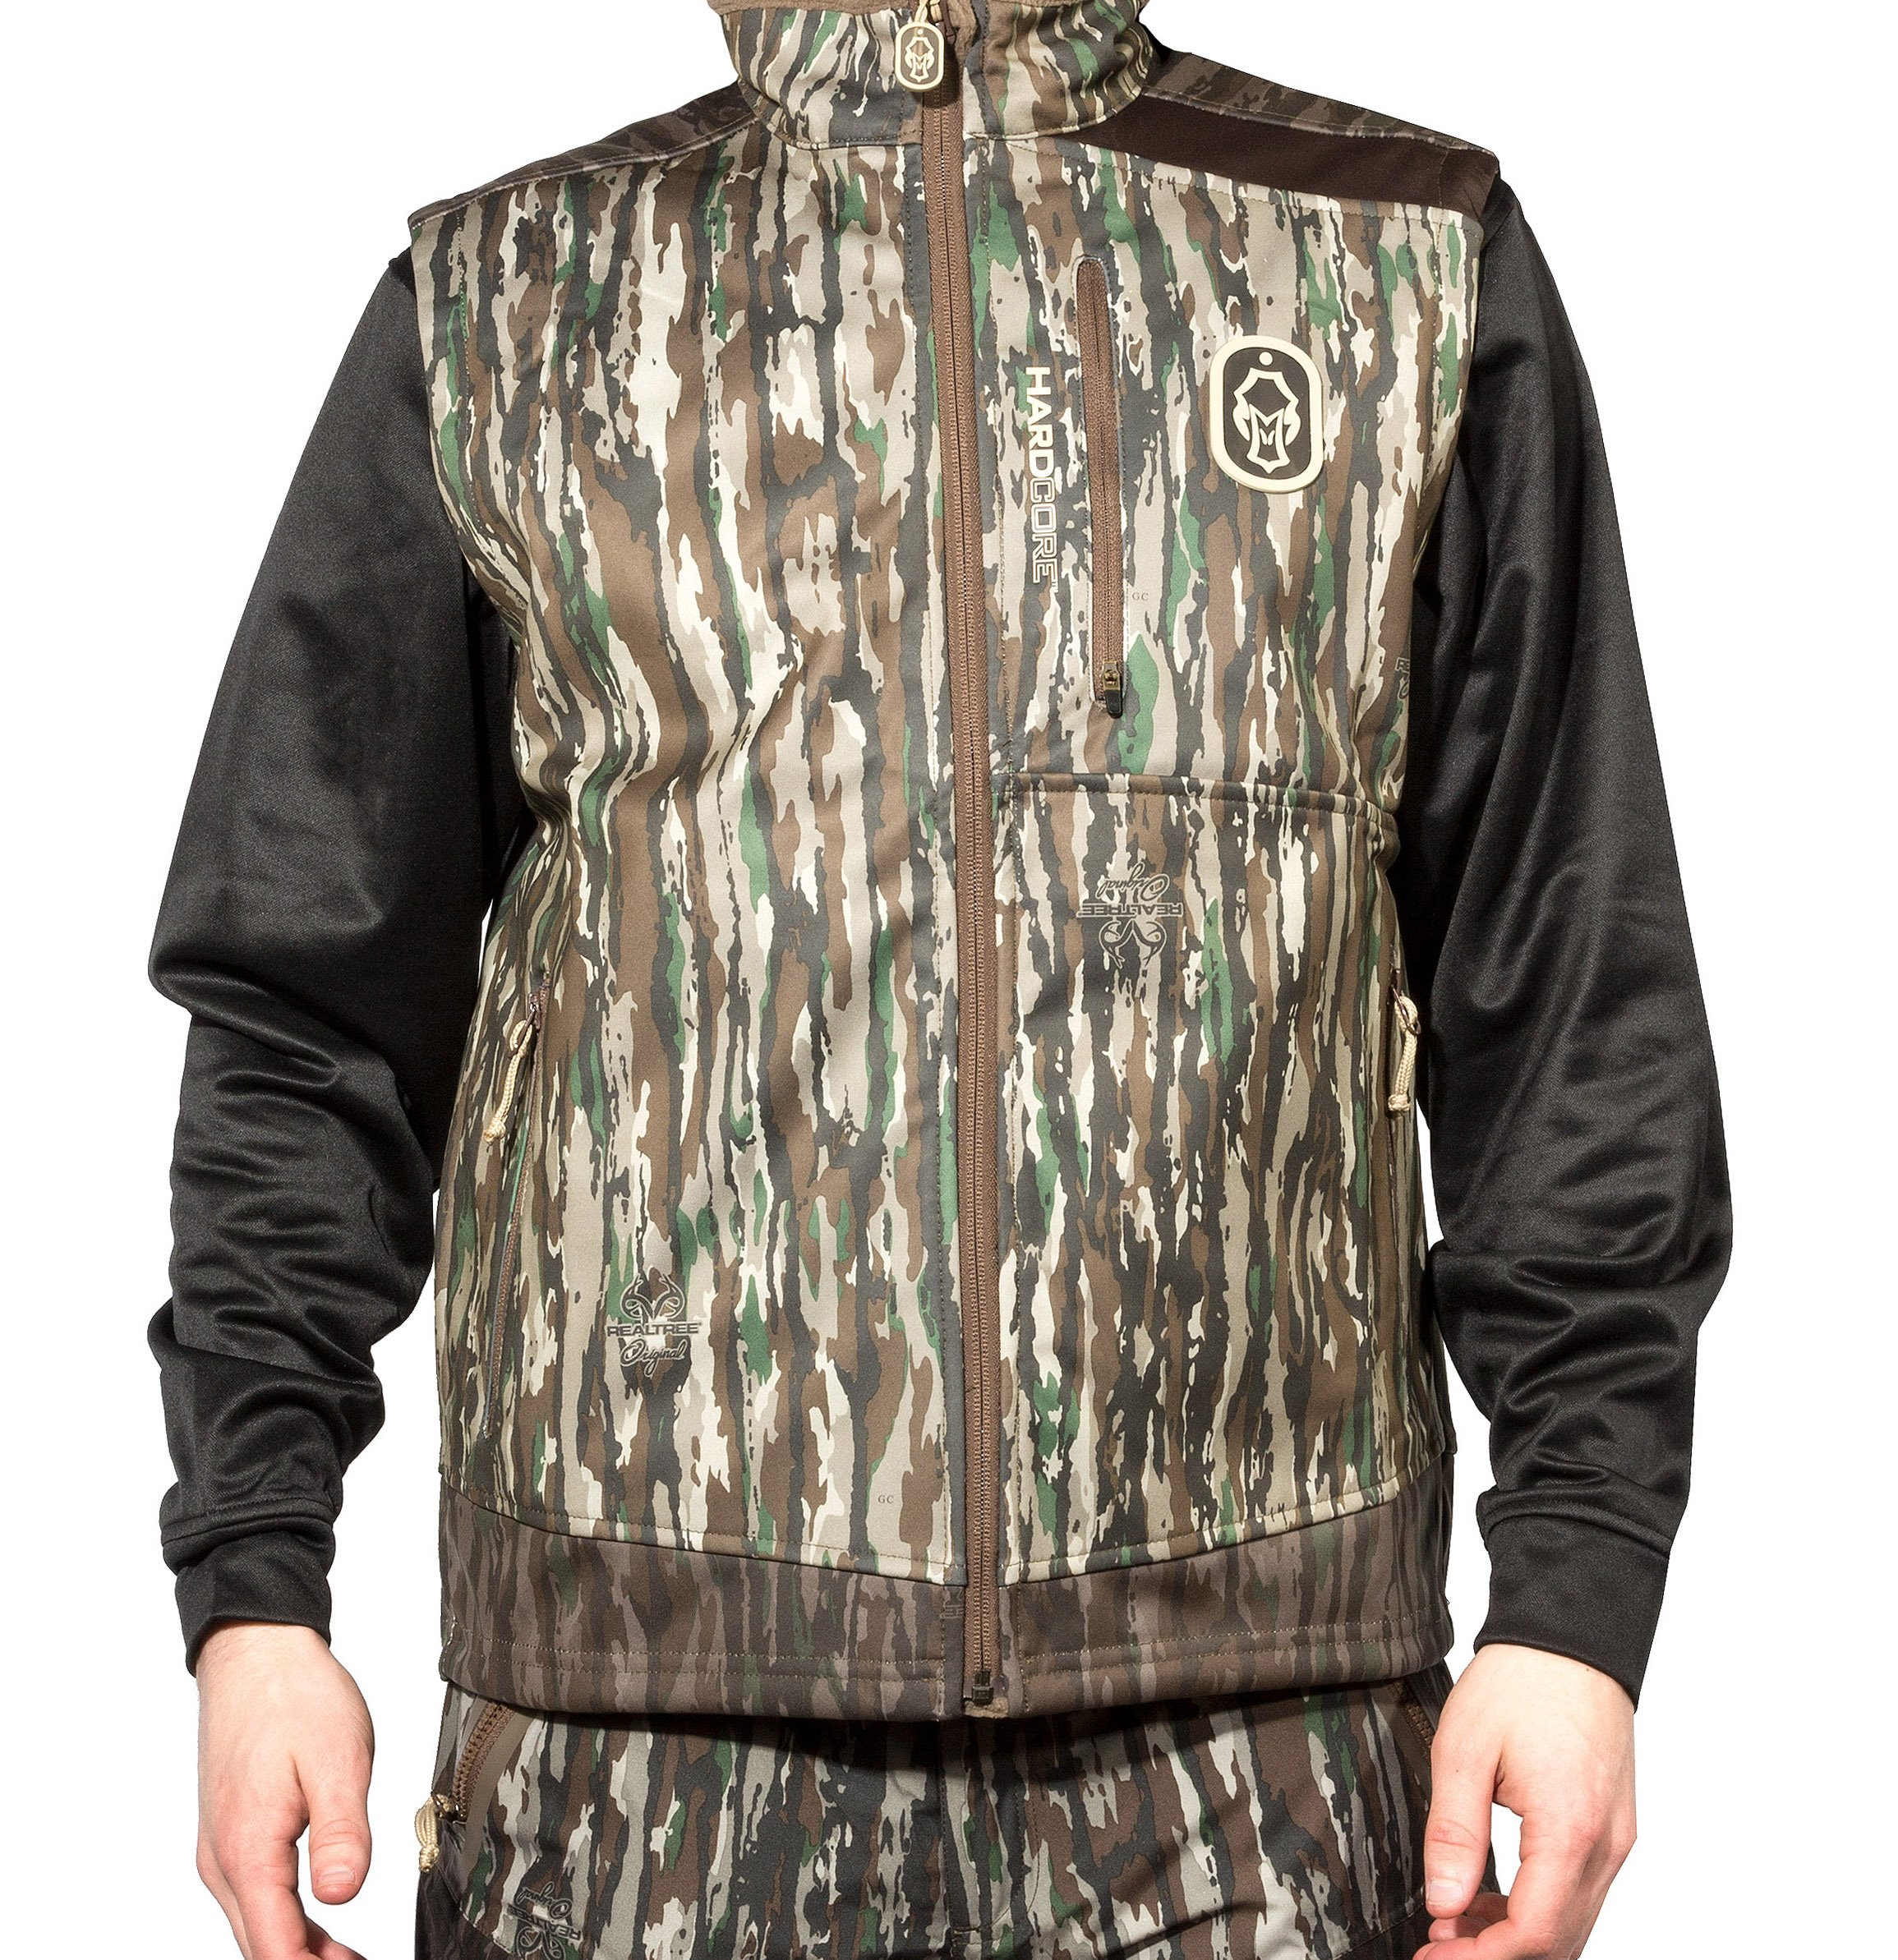 ScentLok Season Opener Vest (Realtree Original, Medium)